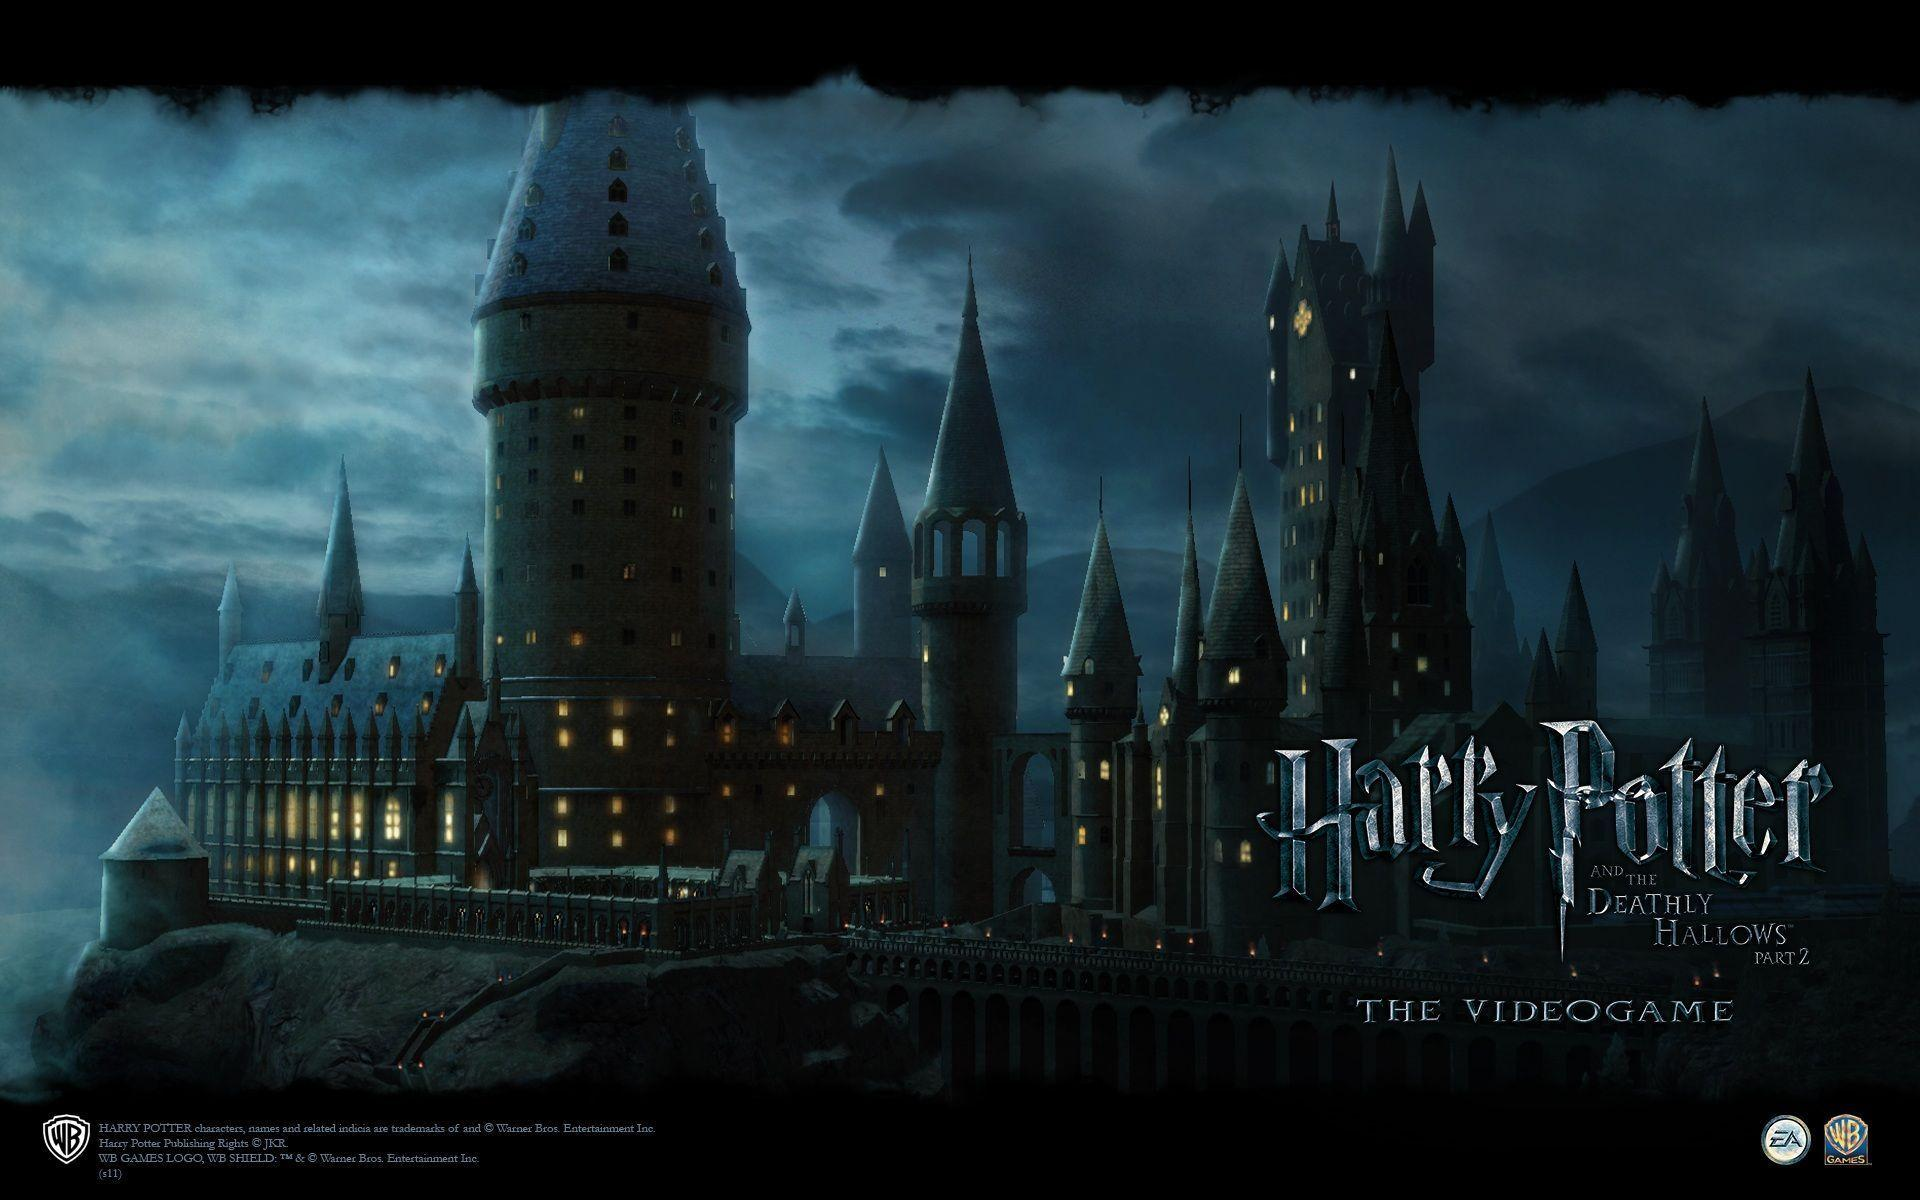 Cool Wallpaper Harry Potter Facebook - bukOYz2  Image_487859.jpg